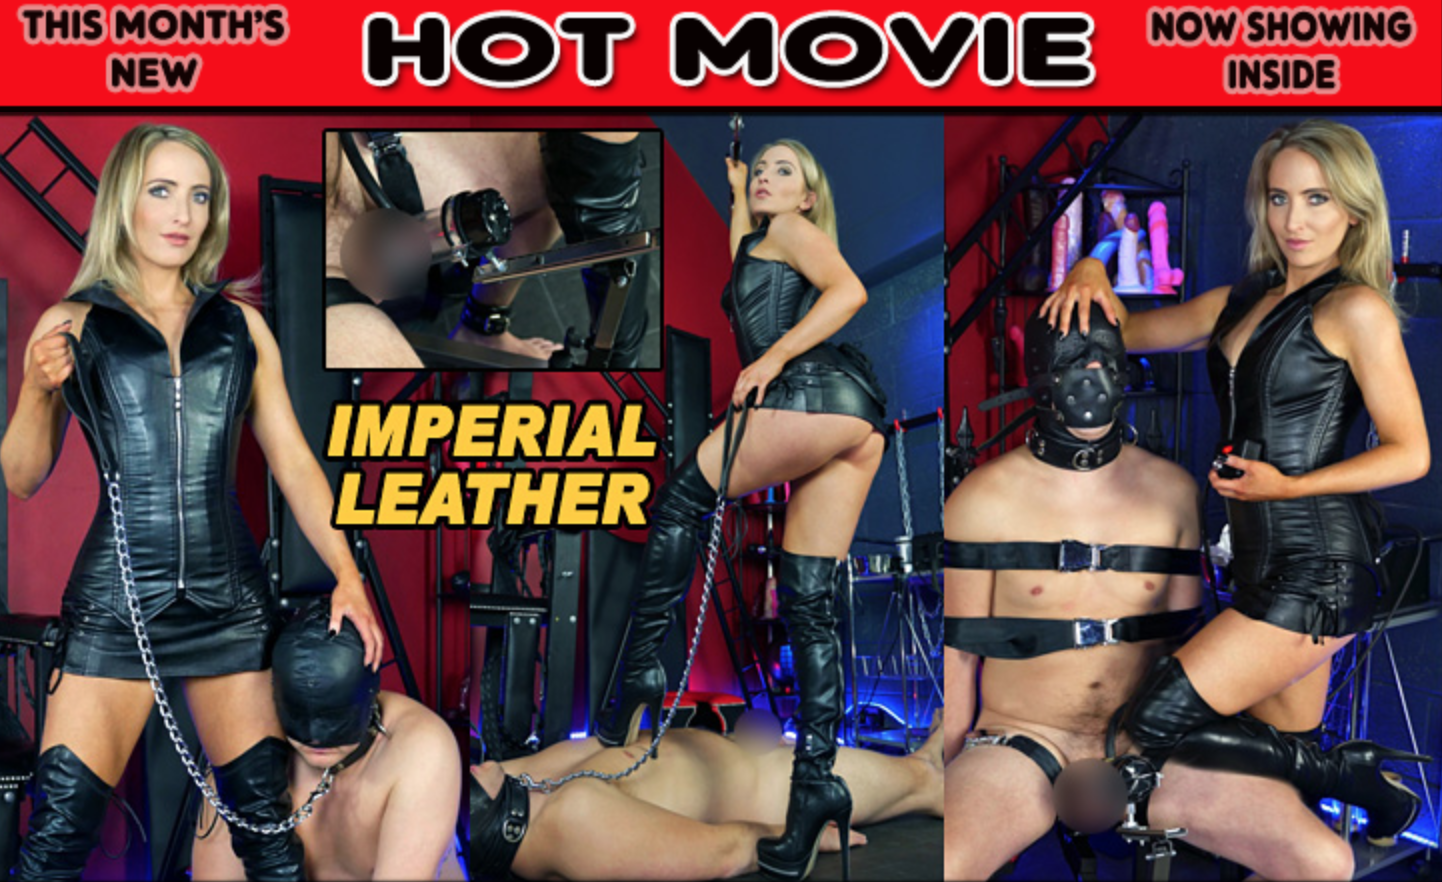 The english Mansion Hot Fem Dom Movie featuring Mistress Courtney